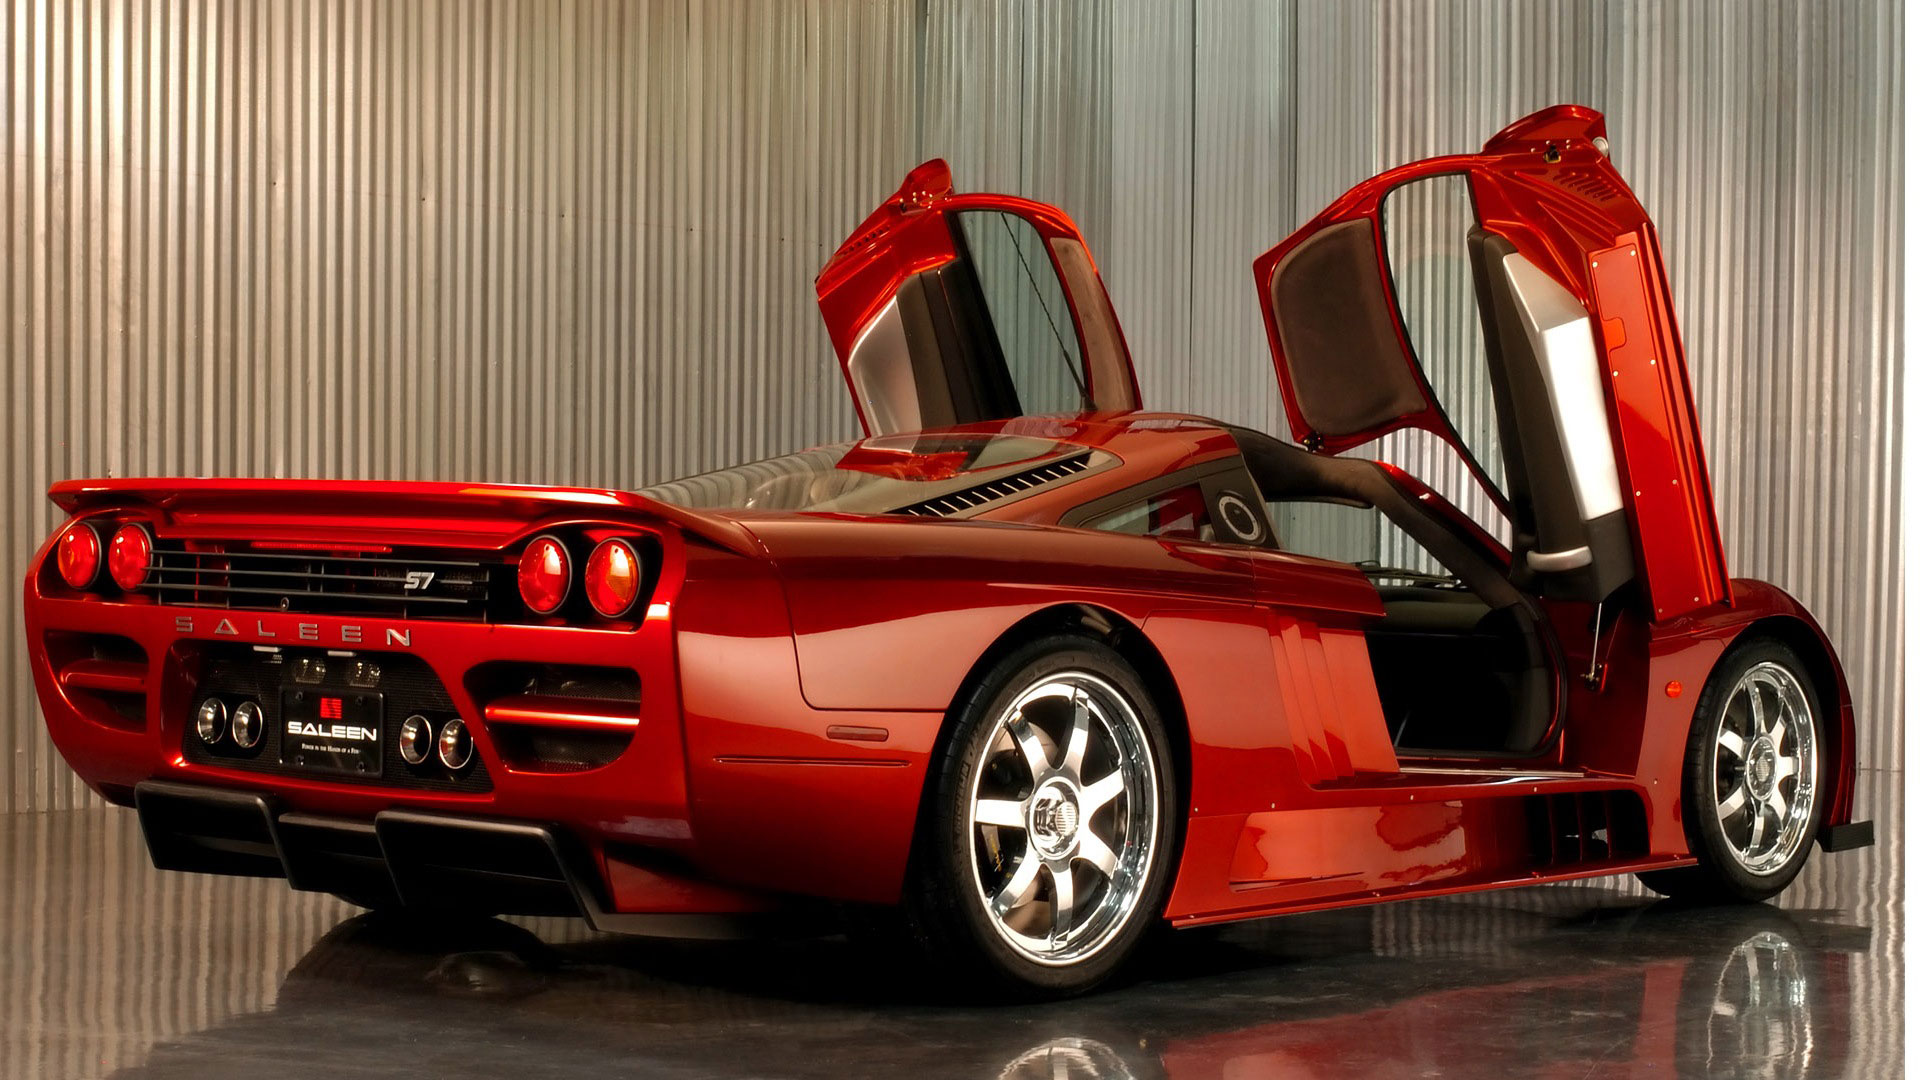 Saleen S7 Google Cover